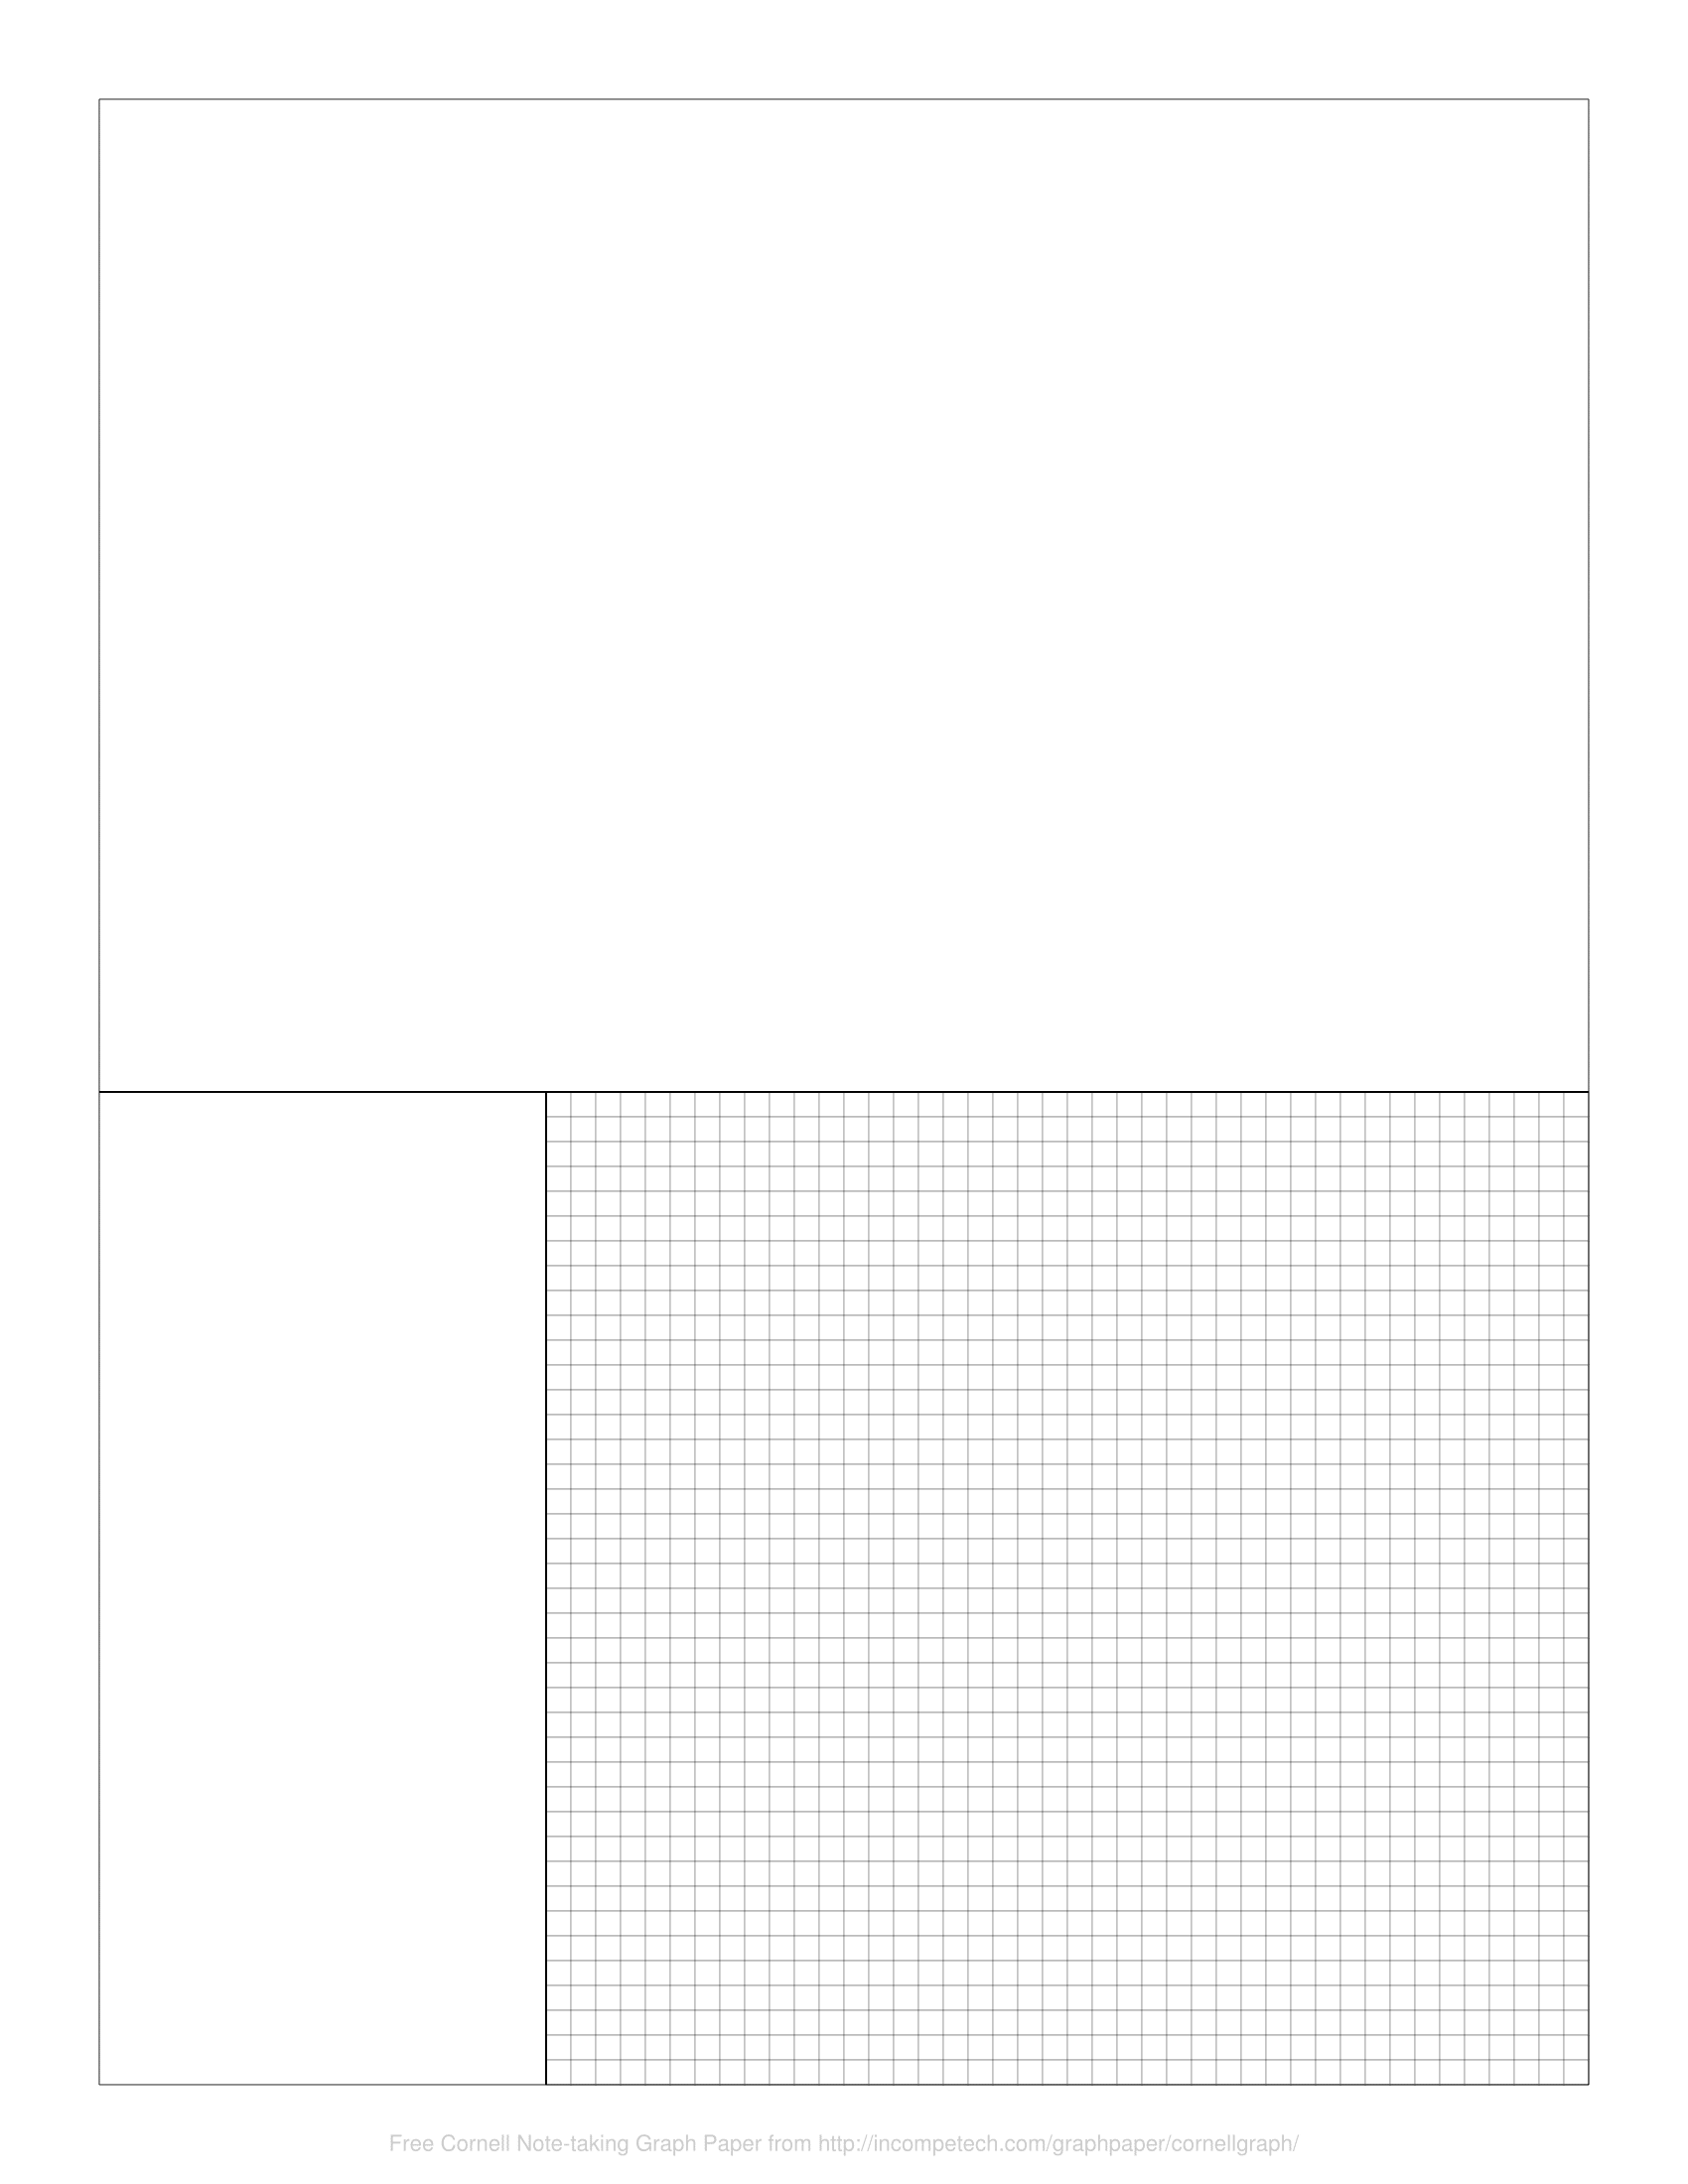 free online graph paper    cornell note